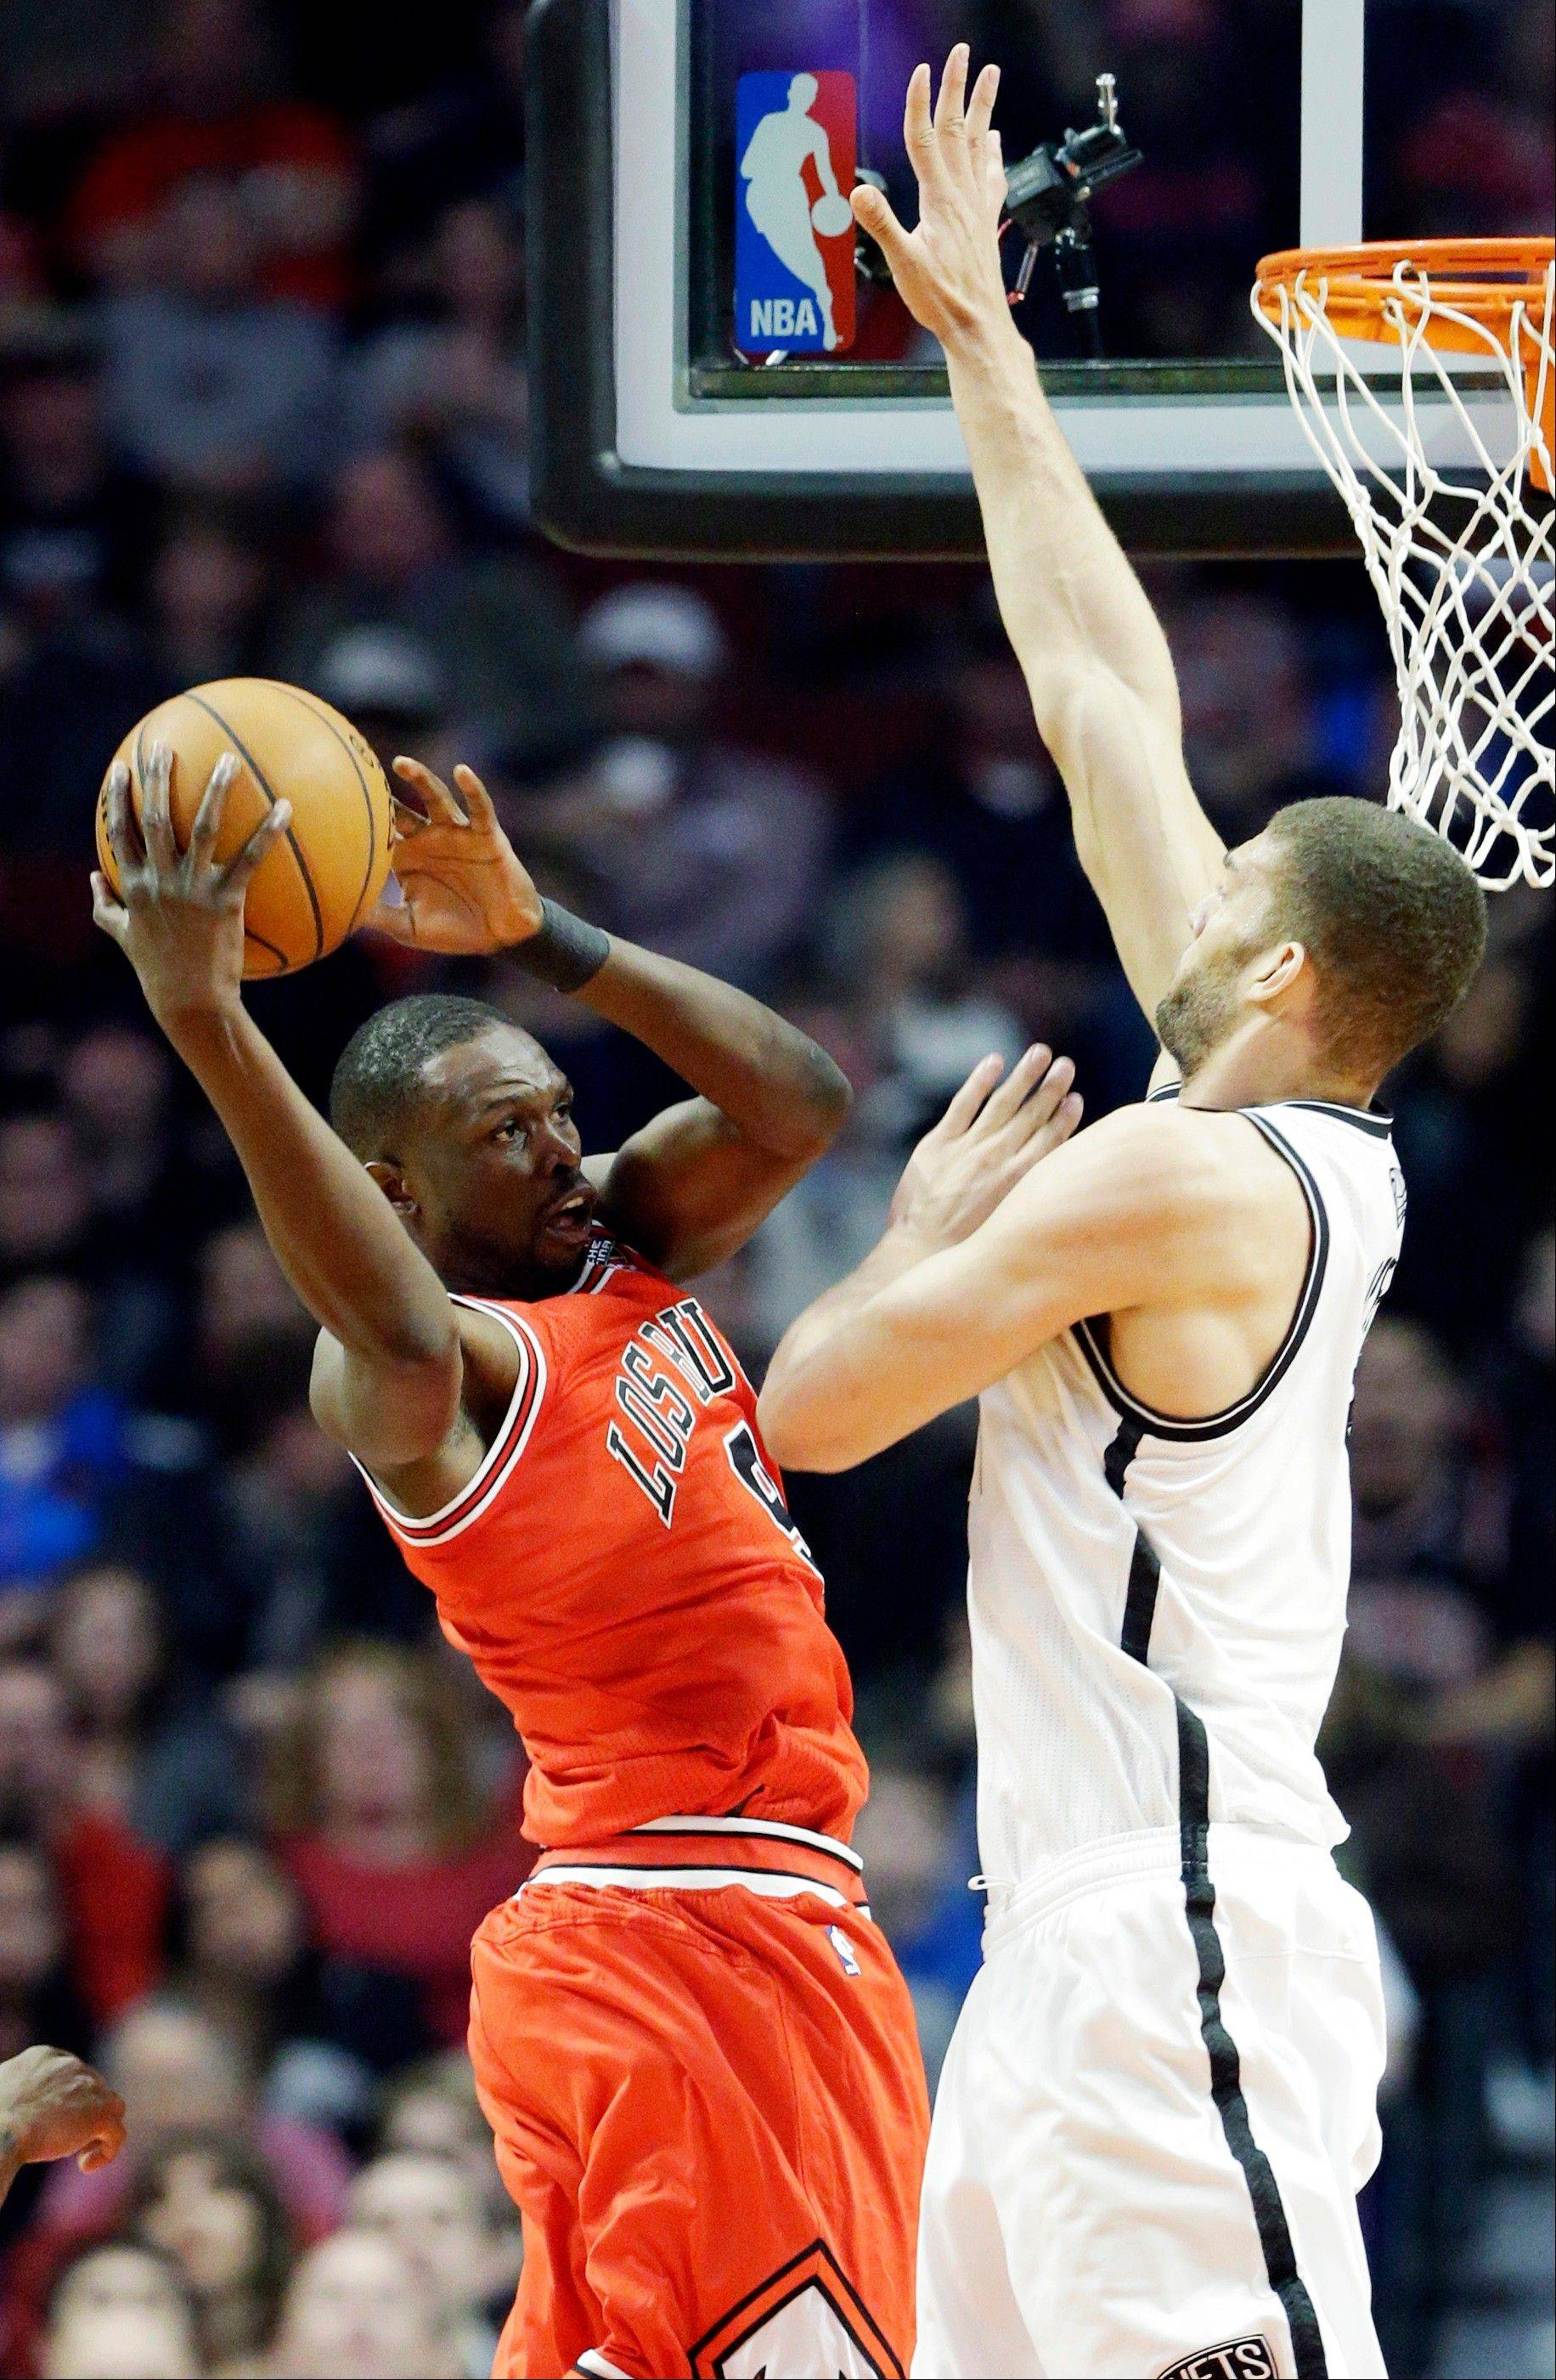 Chicago Bulls forward Luol Deng, left, of South Sudan, looks to a pass against Brooklyn Nets center Brook Lopez during the first half of an NBA basketball game in Chicago on Saturday, March 2, 2013. (AP Photo/Nam Y. Huh)